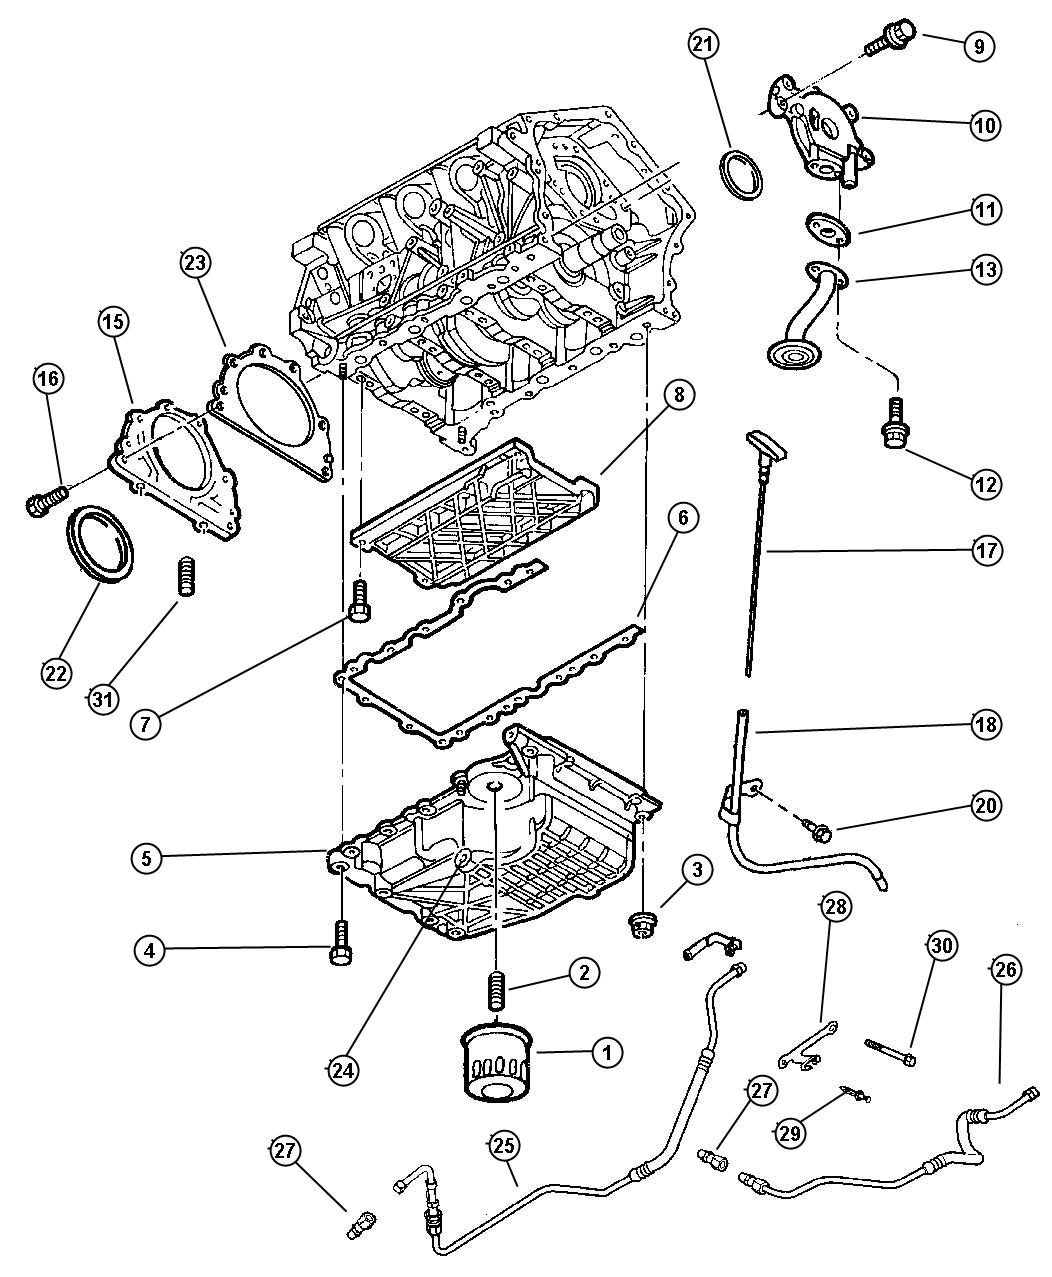 2004 Dodge Stratus Exhaust Diagram, 2004, Free Engine